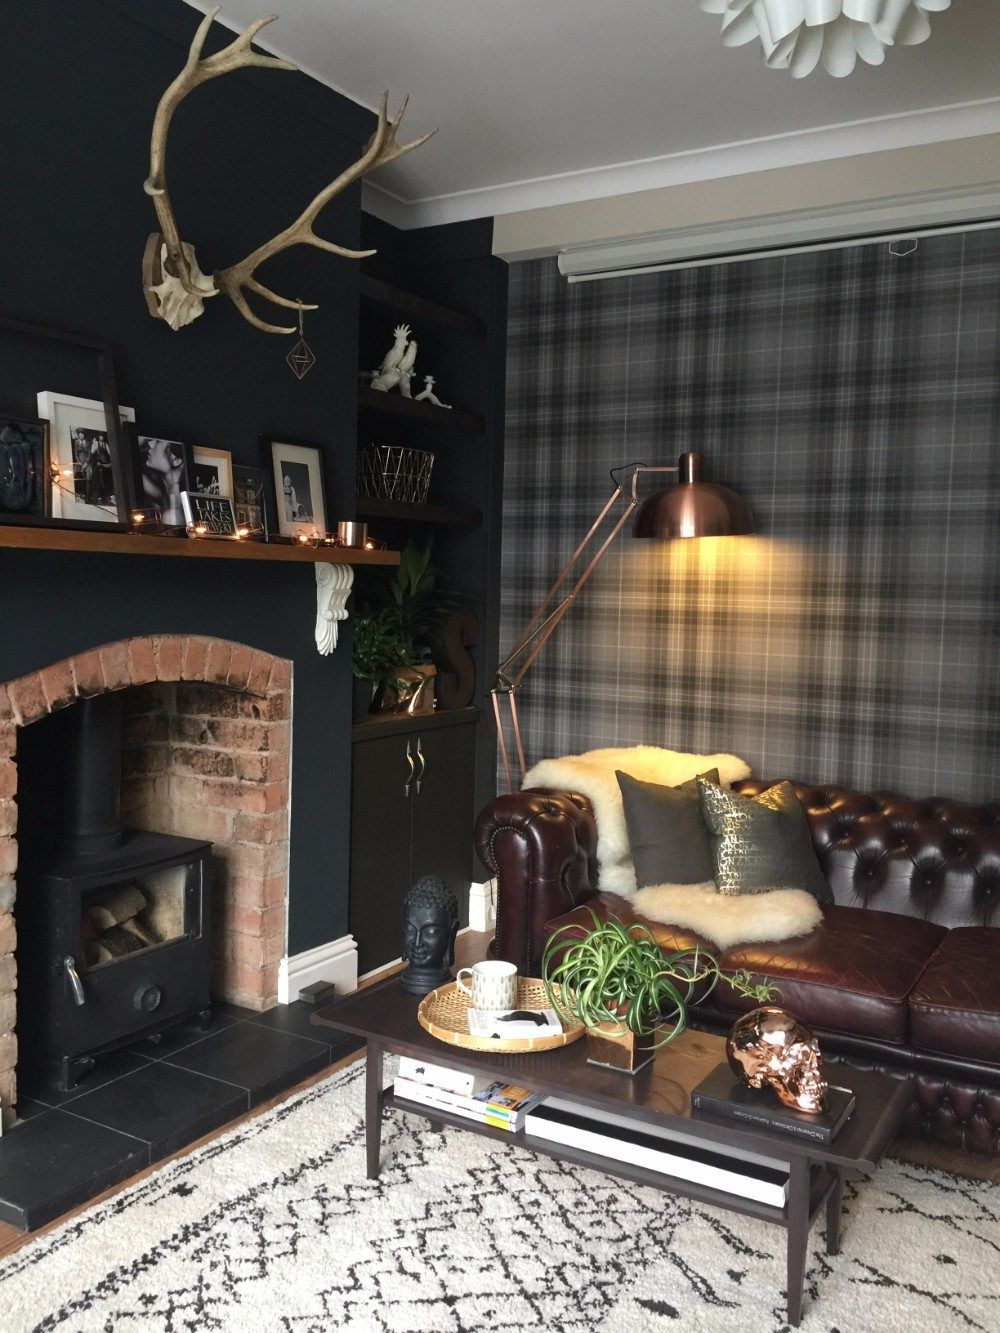 A Dark And Moody Home In England Home Living Room Wallpaper Living Room Snug Room